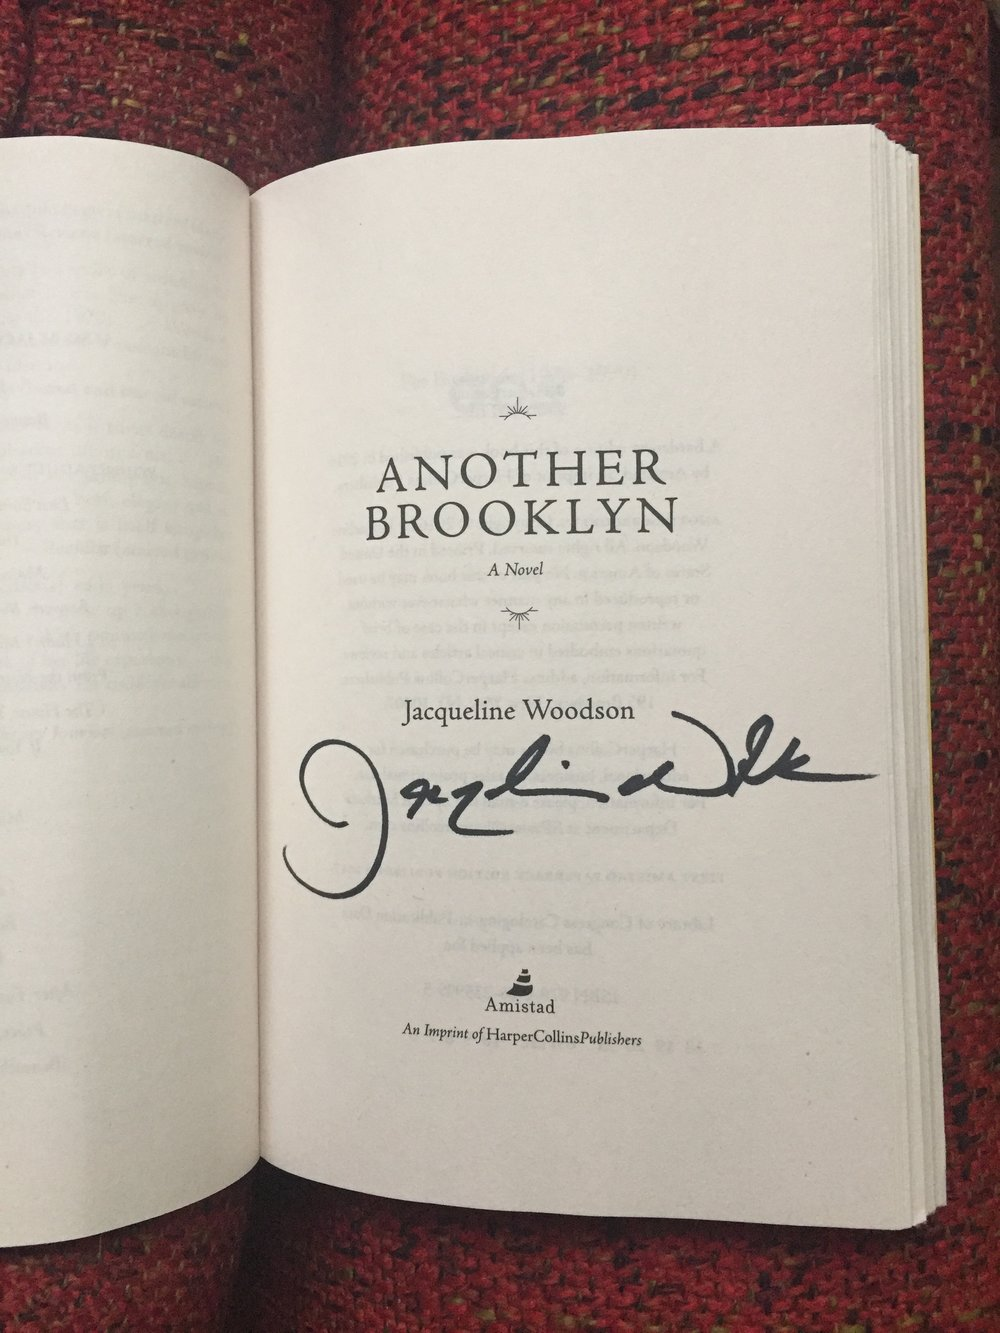 [image description: My signed copy of Another Brooklyn. The photo is an up close of the title page with the author, title, and publisher. This one isn't personalized to me, so the signed part is just Jacqueline's signature.]